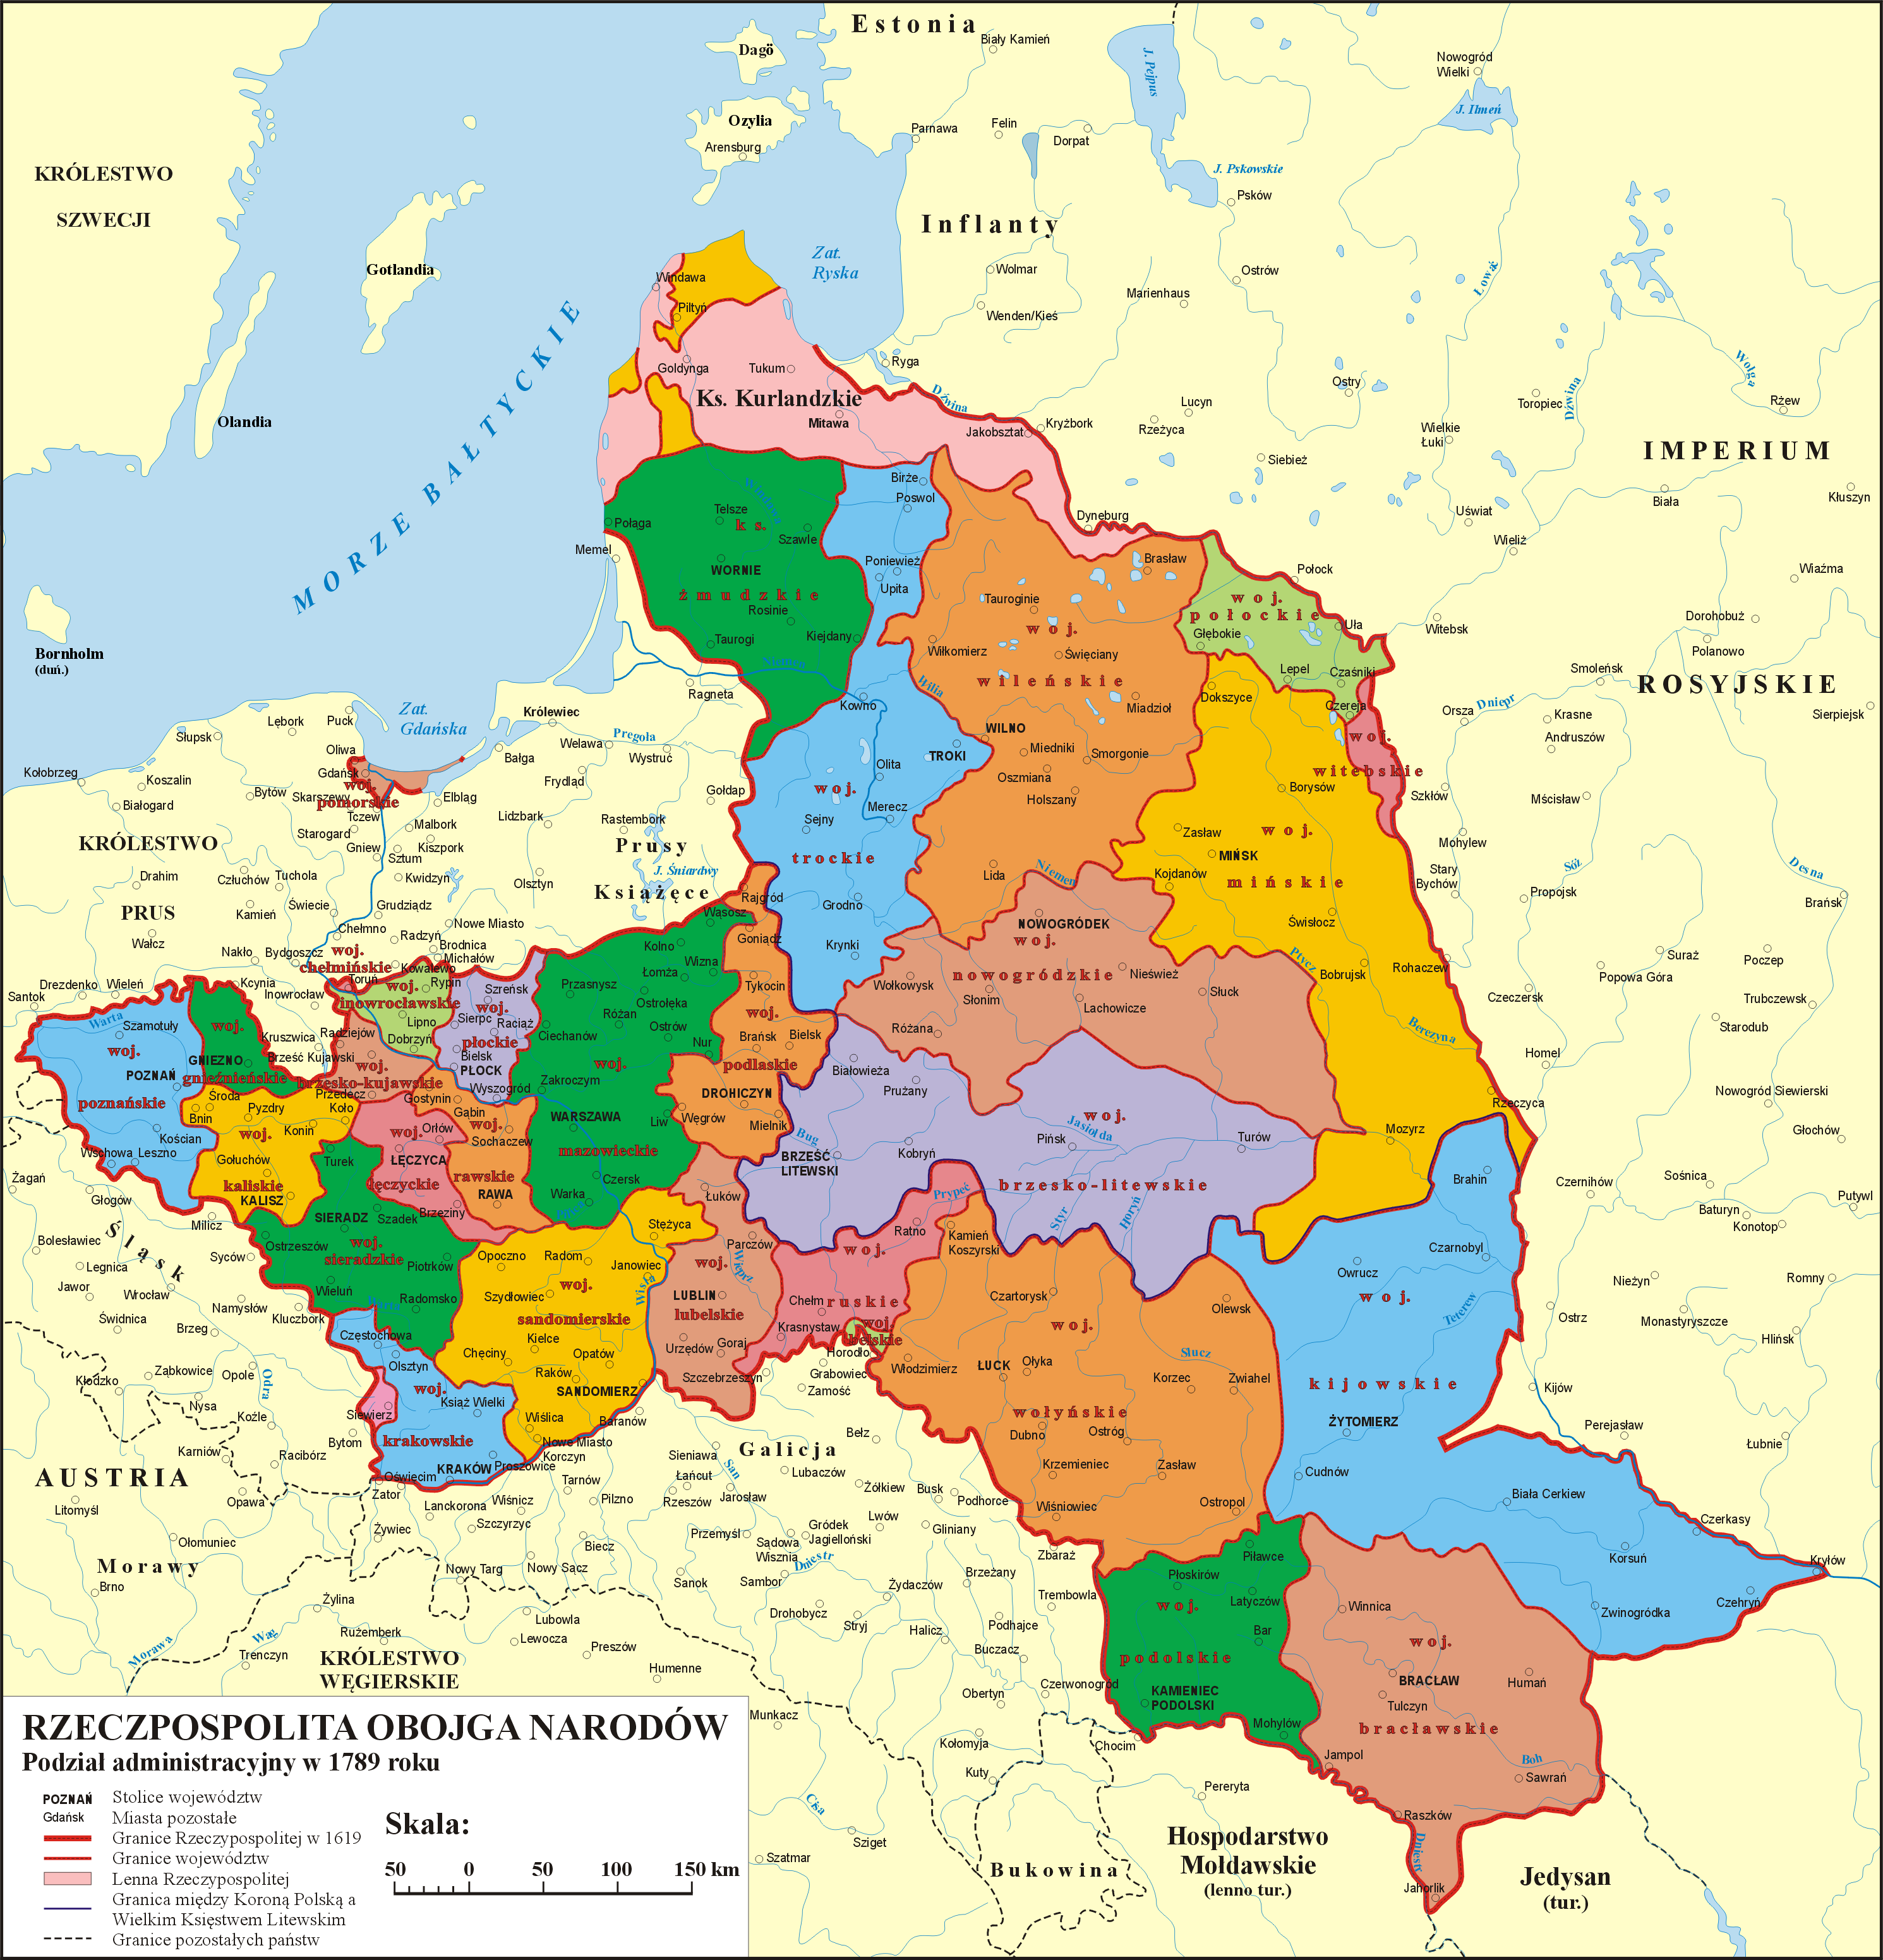 POLAND [1773 1793] Administrative division of the Polish